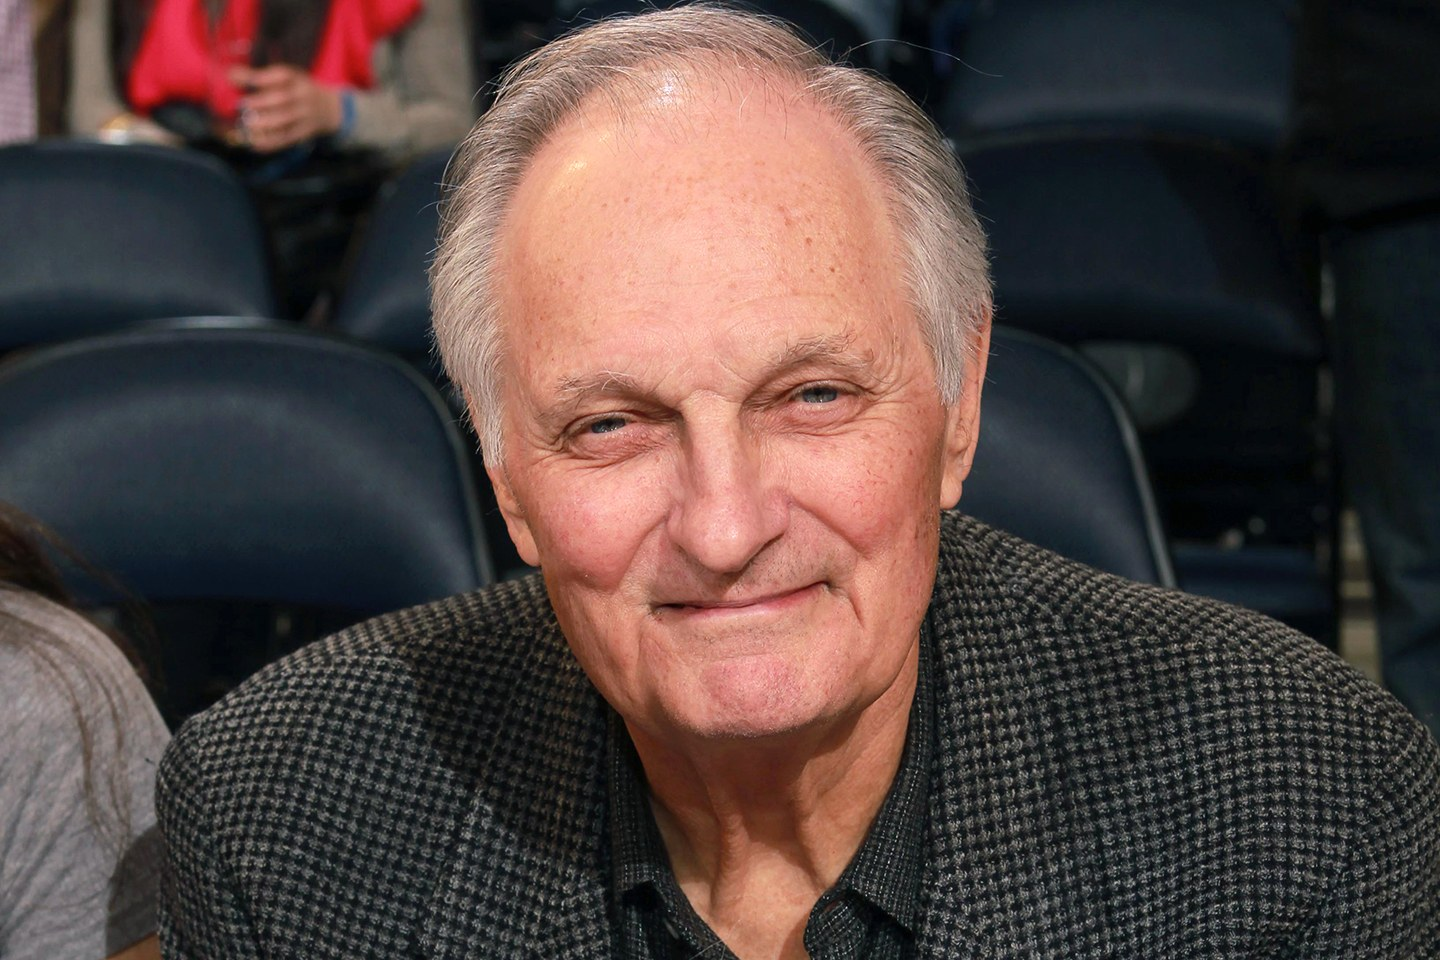 ALAN ALDA RULES HIMSELF OUT OF JAMES BOND